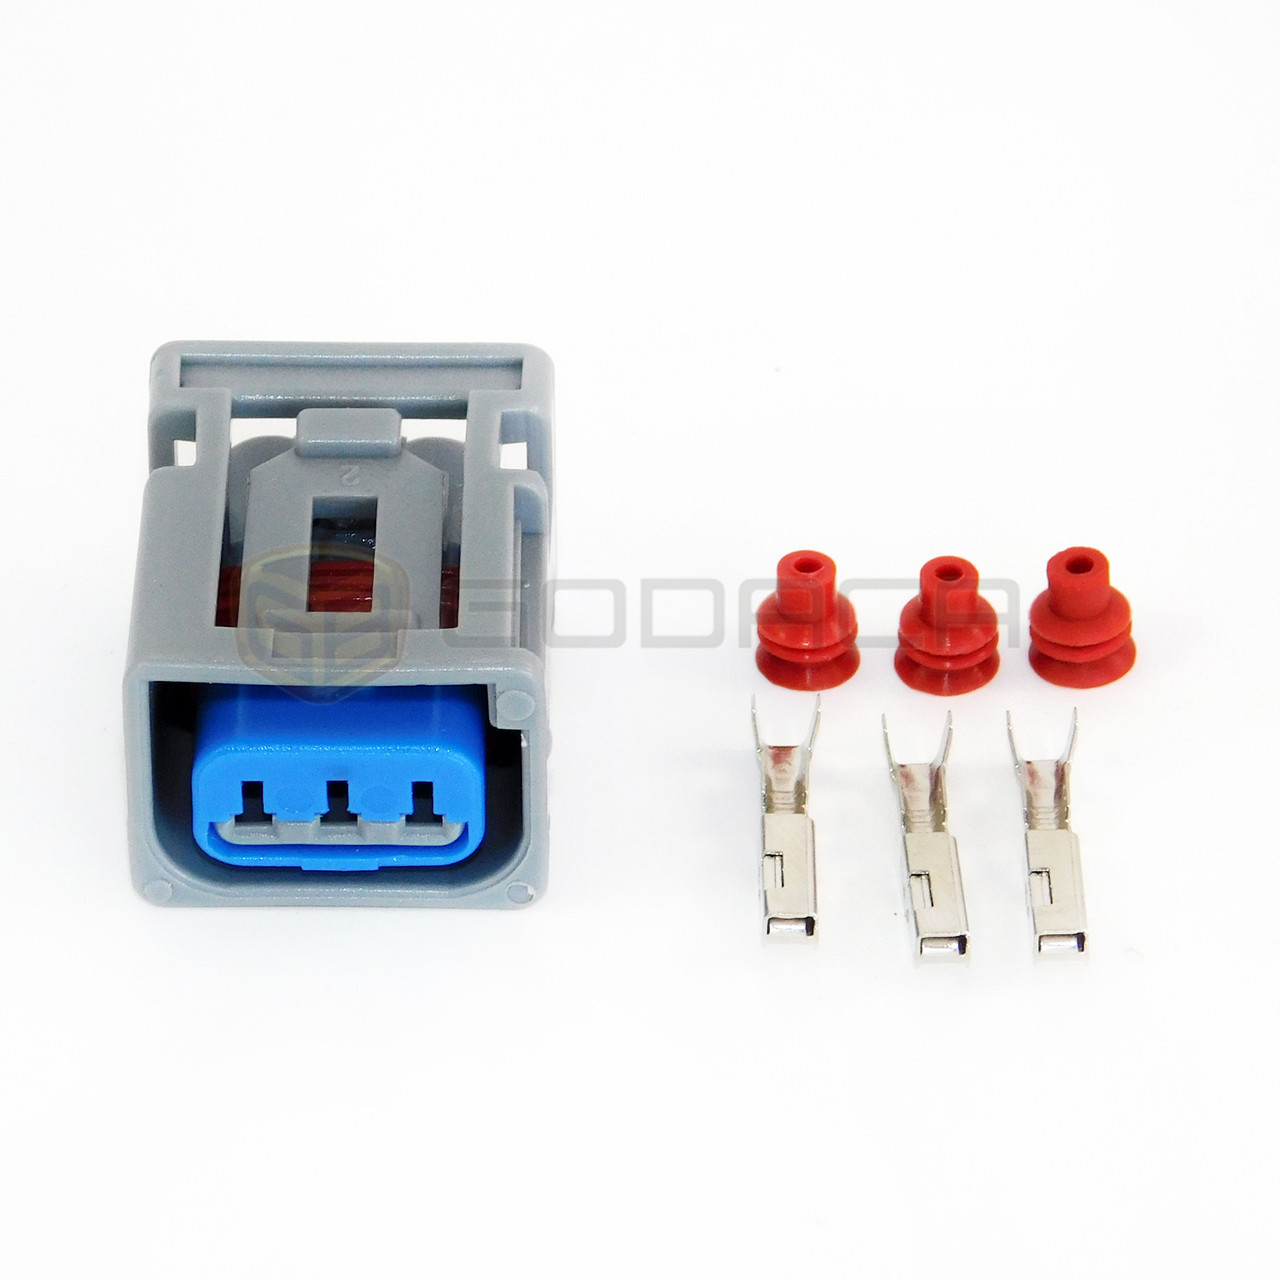 1205v Plug Wiring - Great Installation Of Wiring Diagram • on 3-way switch conversion, 3-way receptacle diagram, 3-way plug valve, 3-way electrical wiring diagrams, 3 wire plug diagram, 3-way switch outlet, 3-way switch diagram,